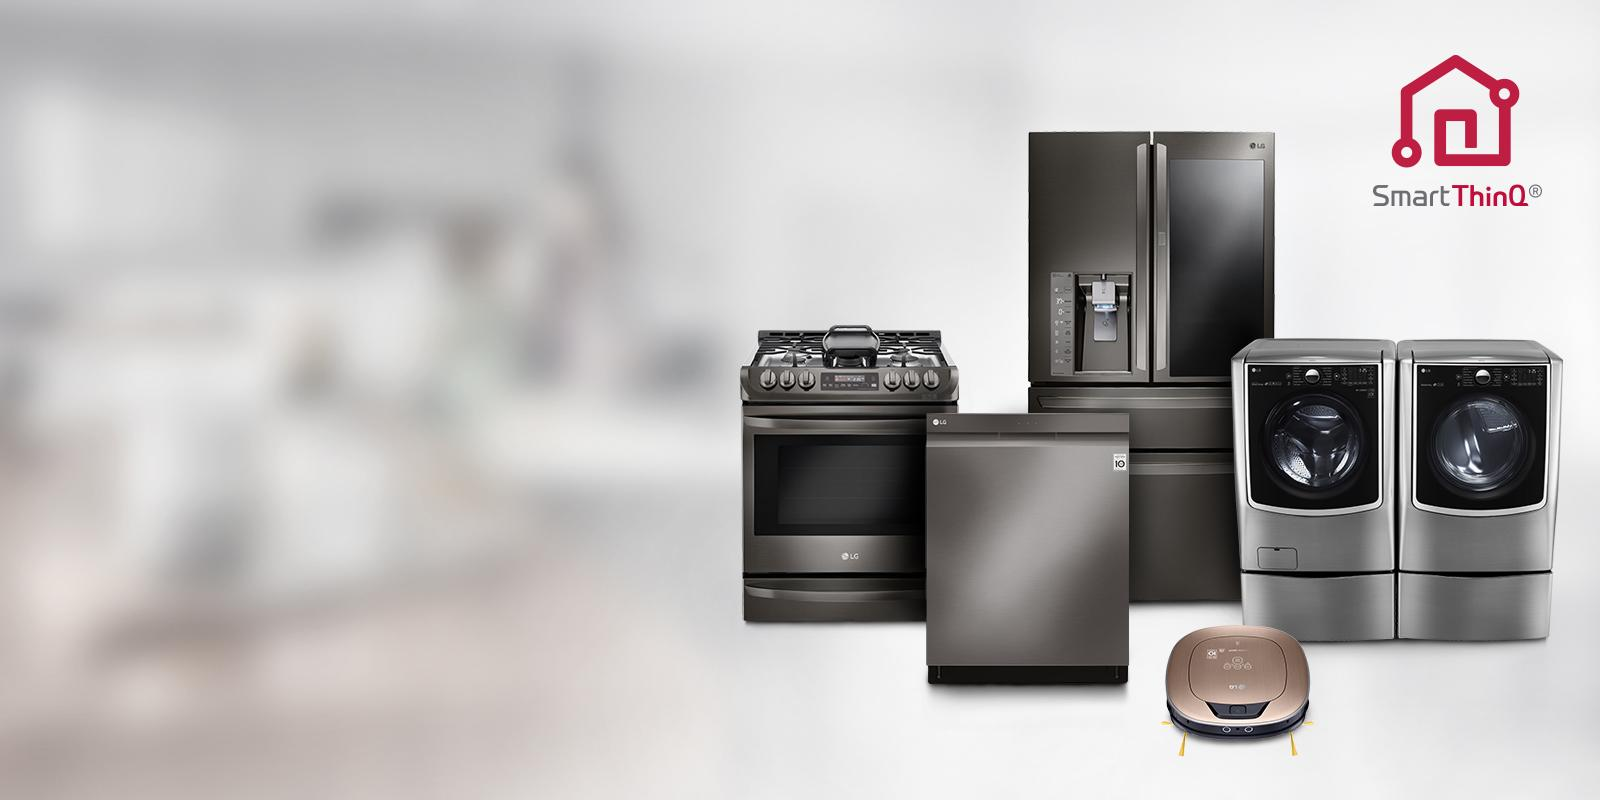 LG Appliances: Compare Kitchen & Home Appliances | LG USA